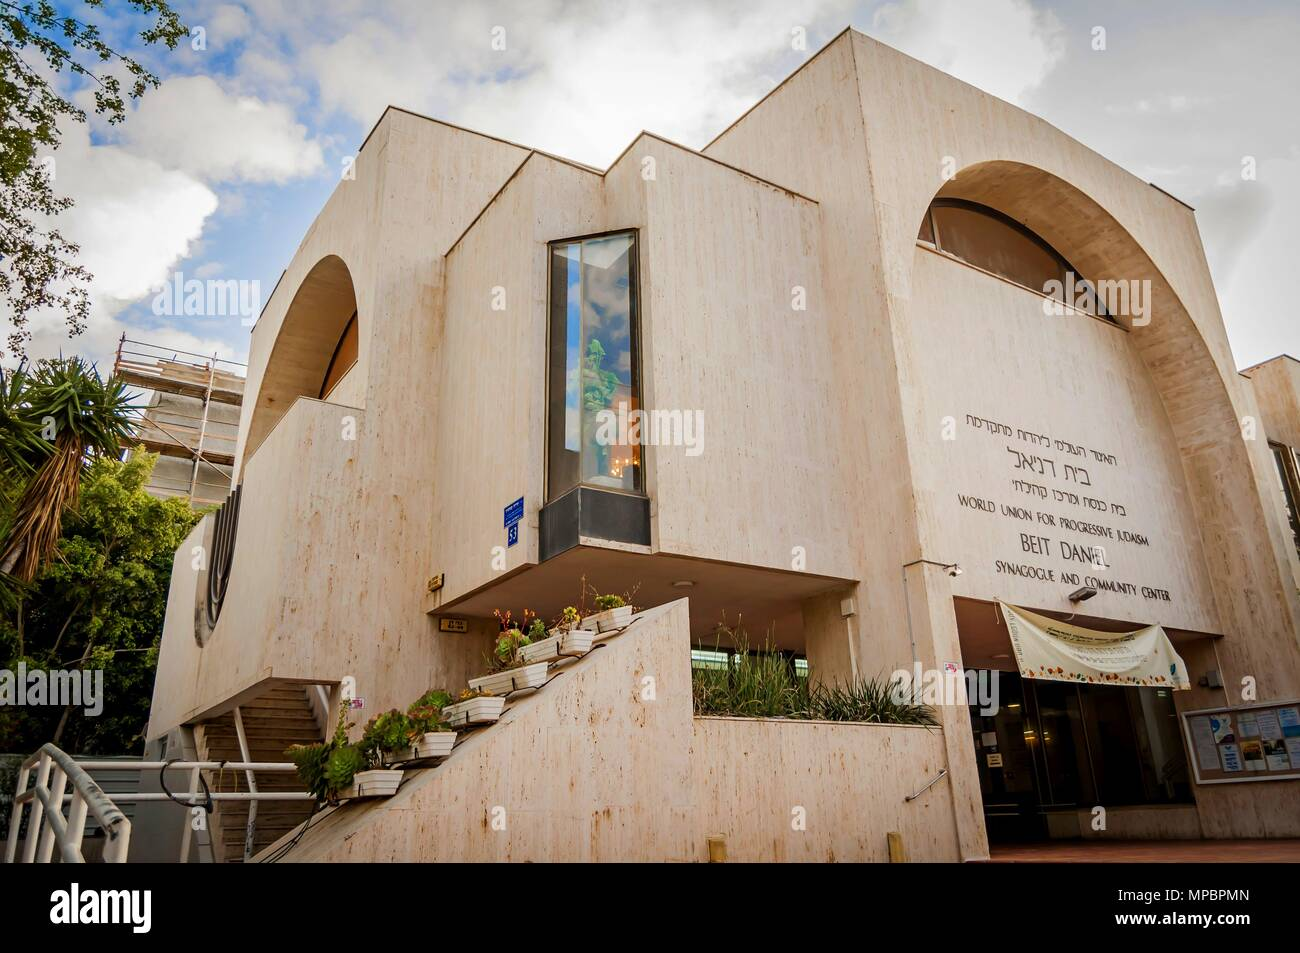 TEL AVIV, ISRAEL. March 30, 2018. The Beit Daniel synagogue and Reform Judaism community center. - Stock Image